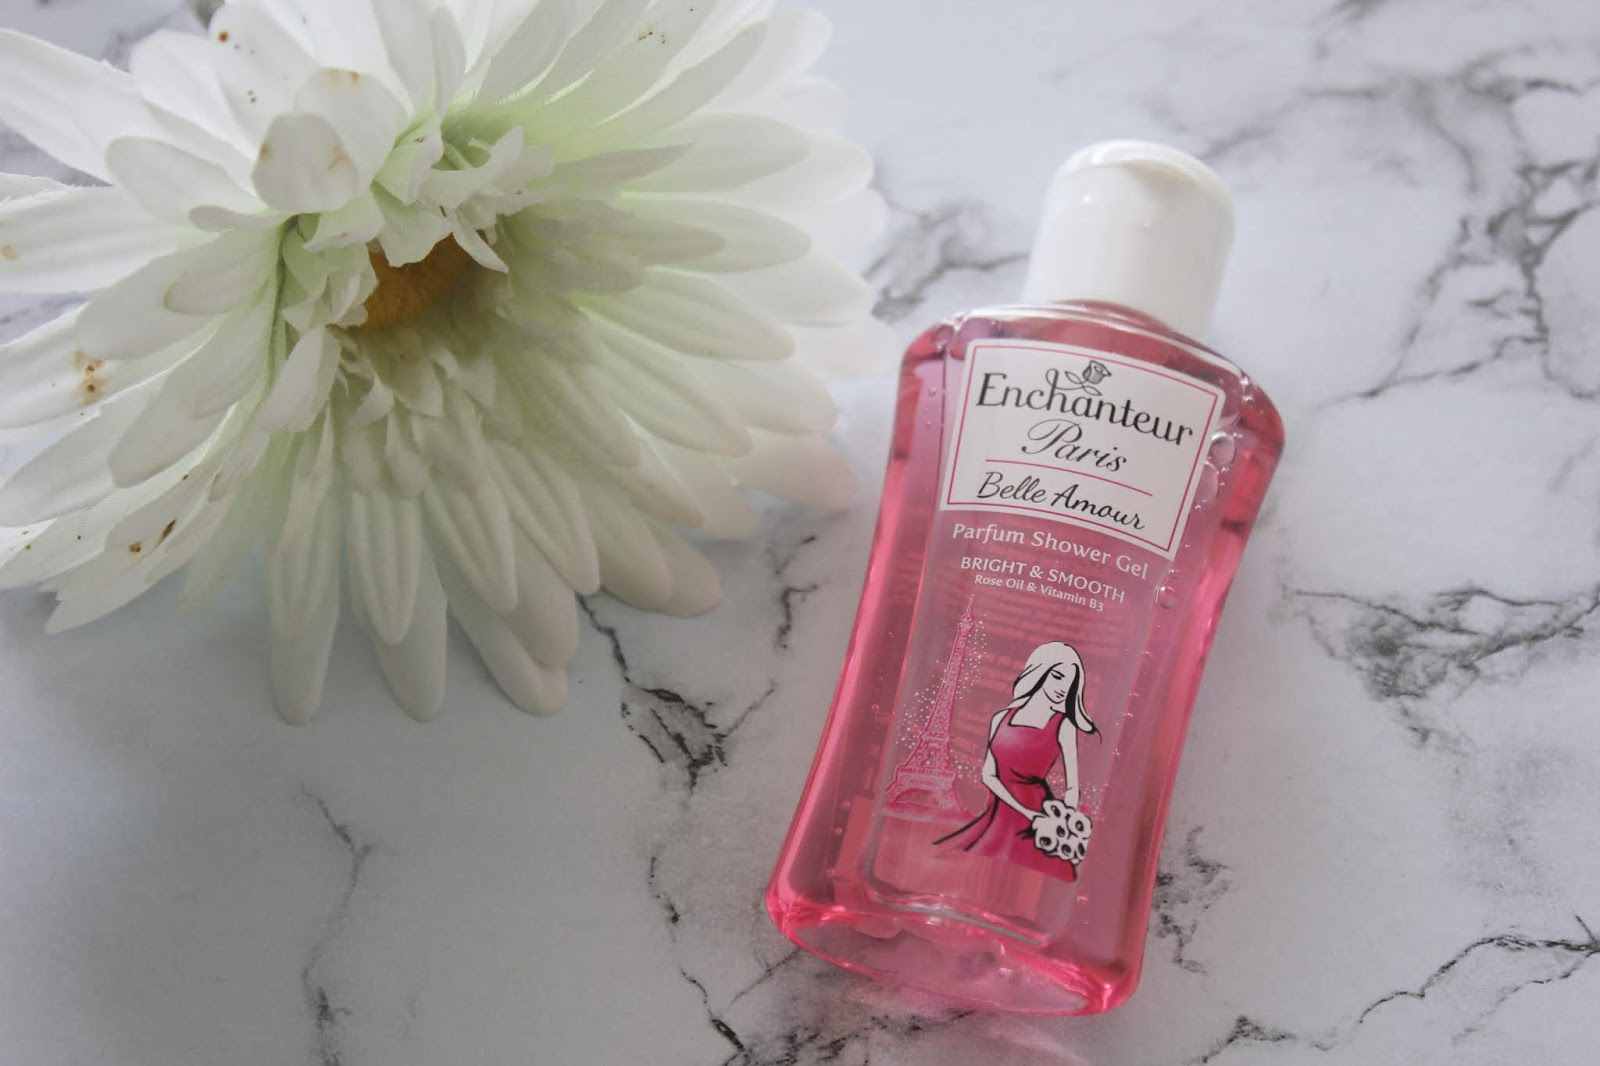 Enchanteur Paris, Belle Amour, Shower Gel